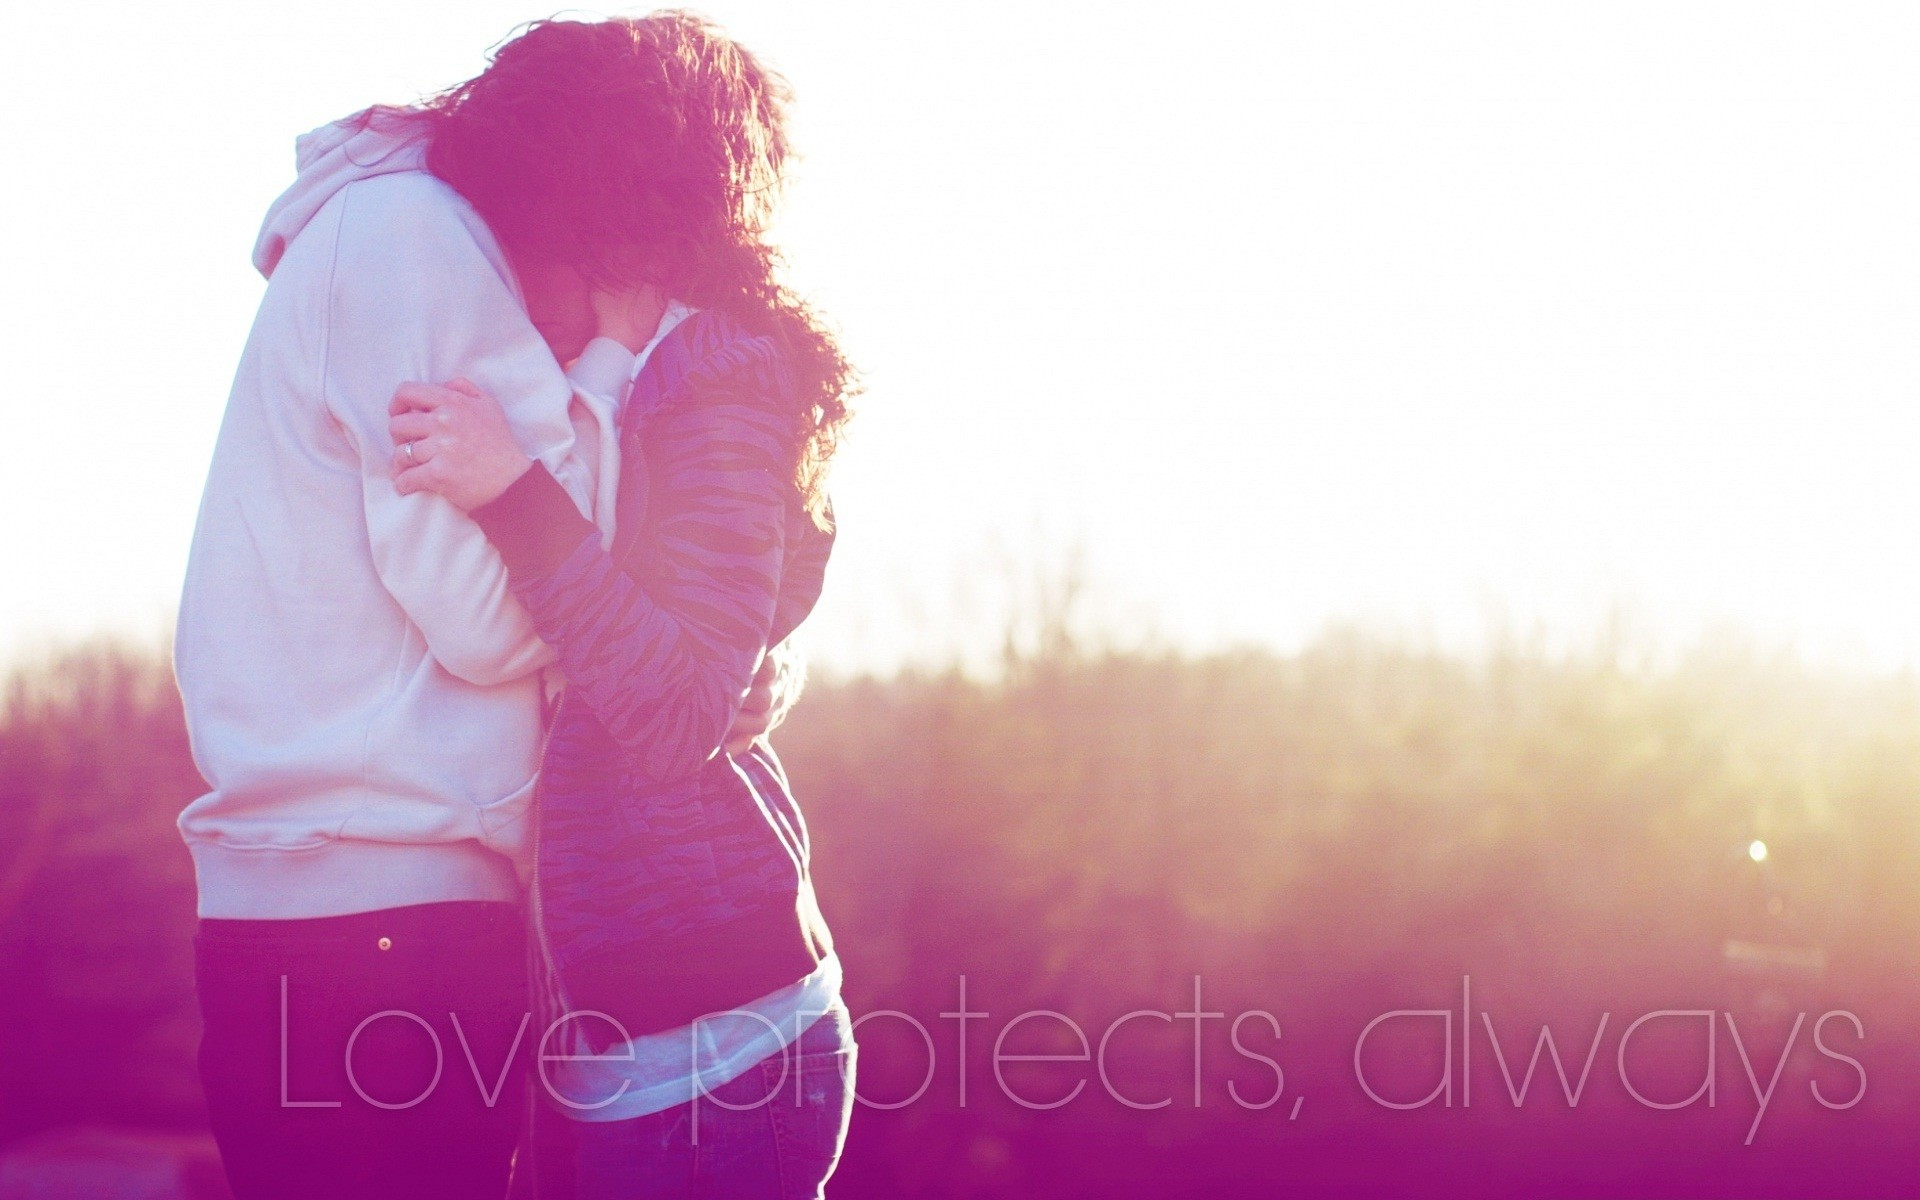 love-protect-always-couple-hugs-and-kisses-wallpapers